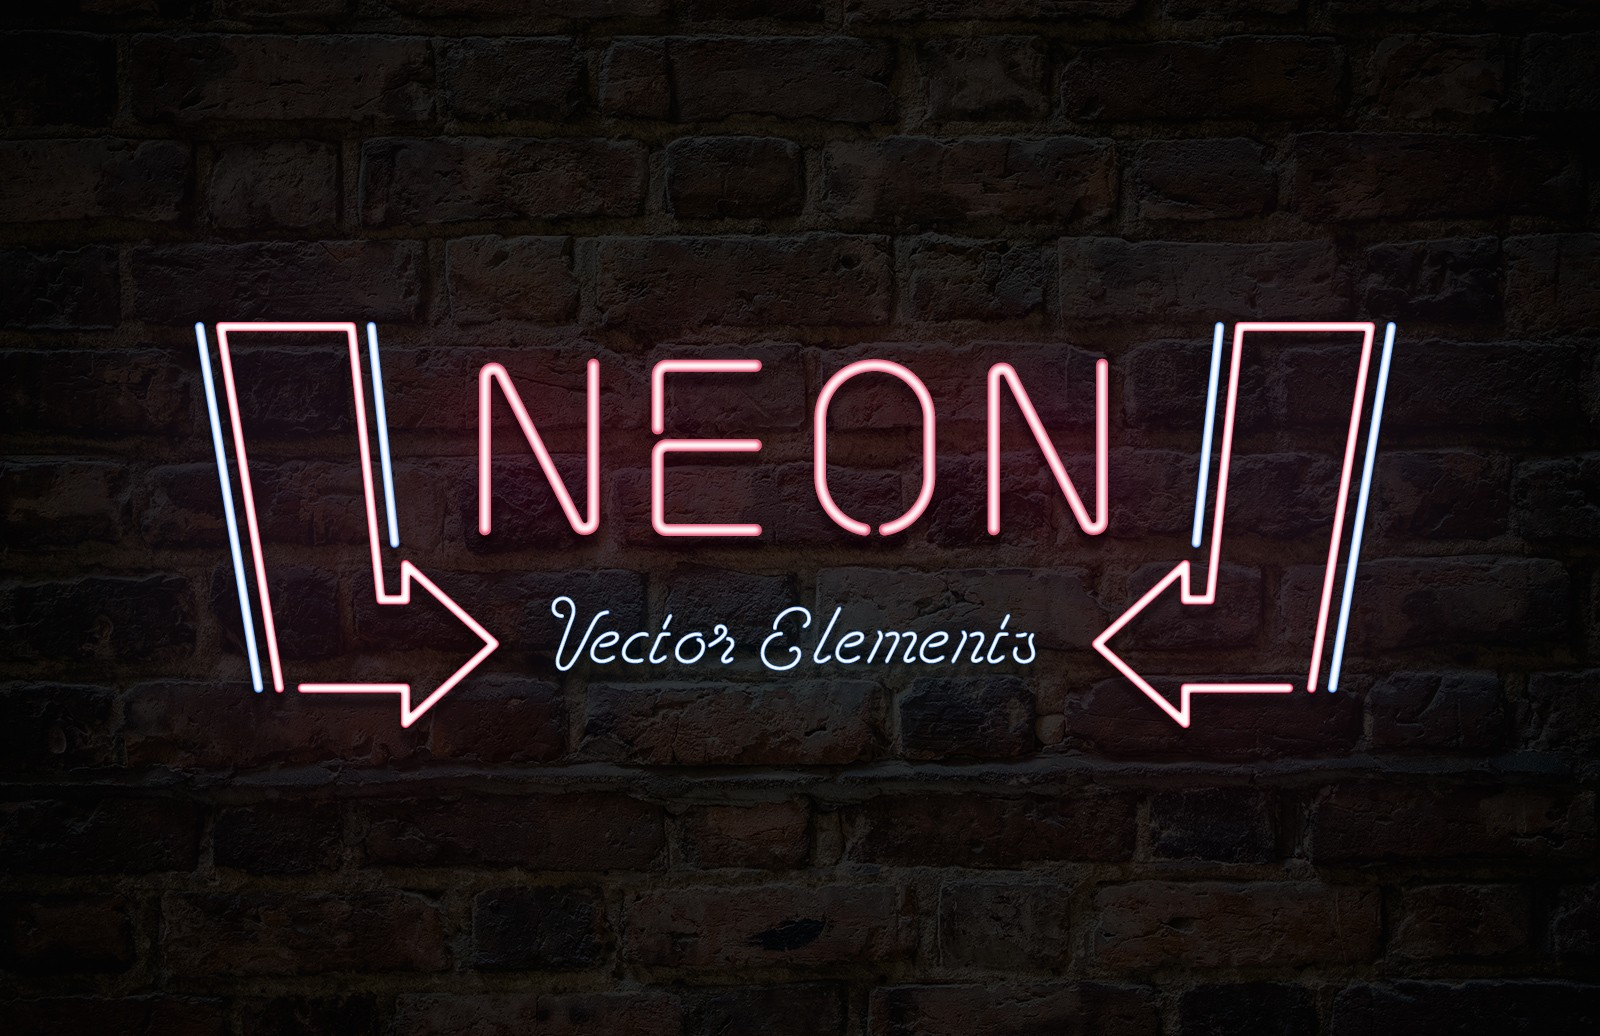 Neon Sign Vector Elements Preview 1D